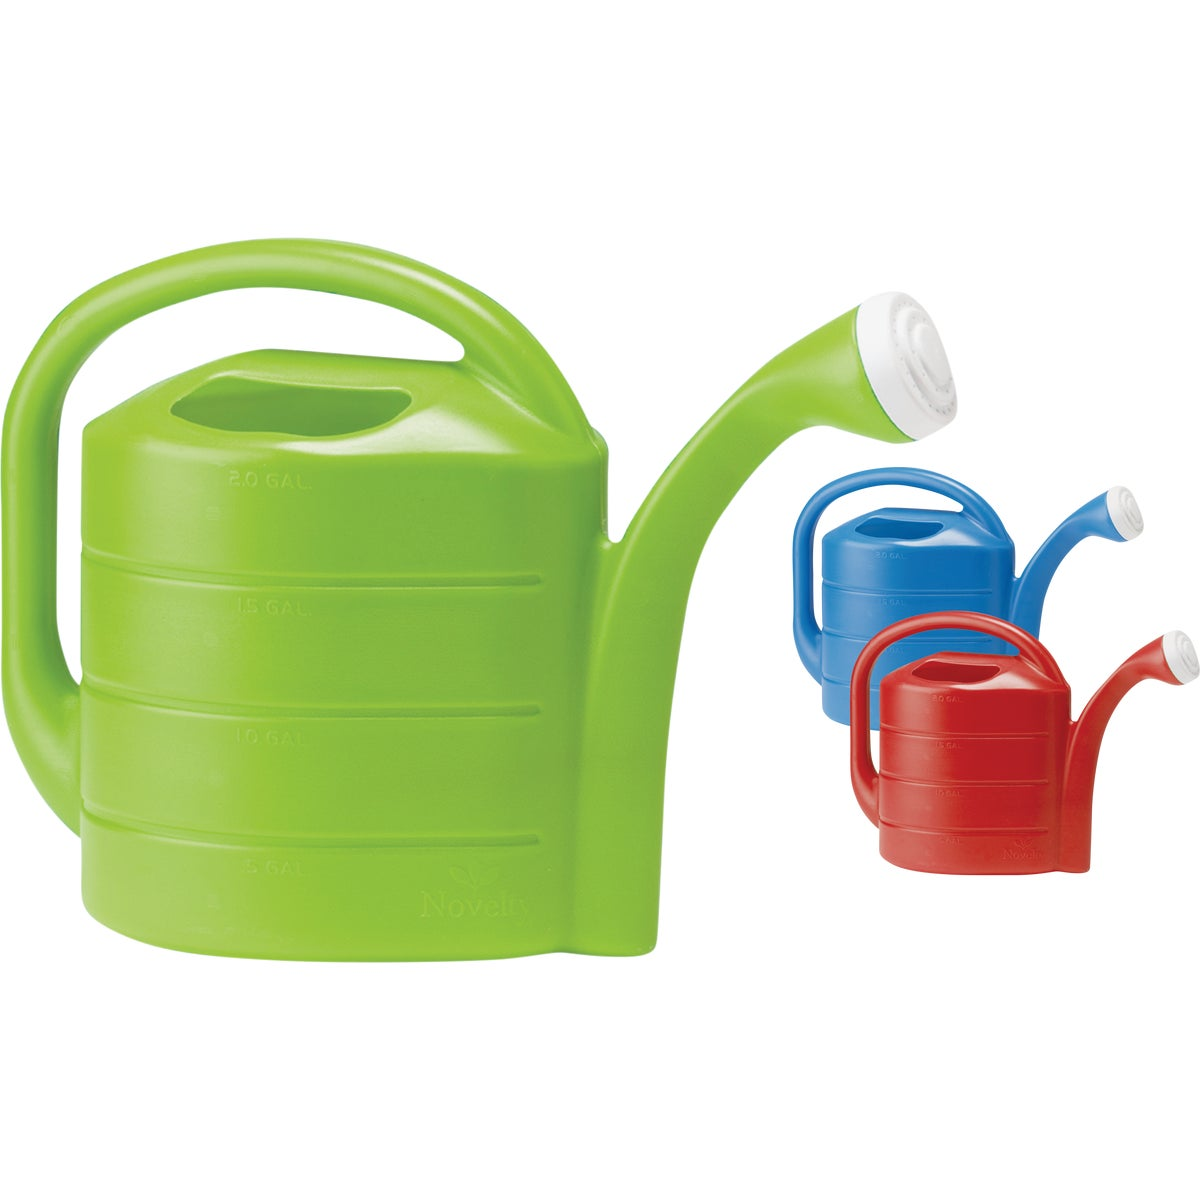 2G AST POLY WATERING CAN - 30408 by Novelty Mfg Co